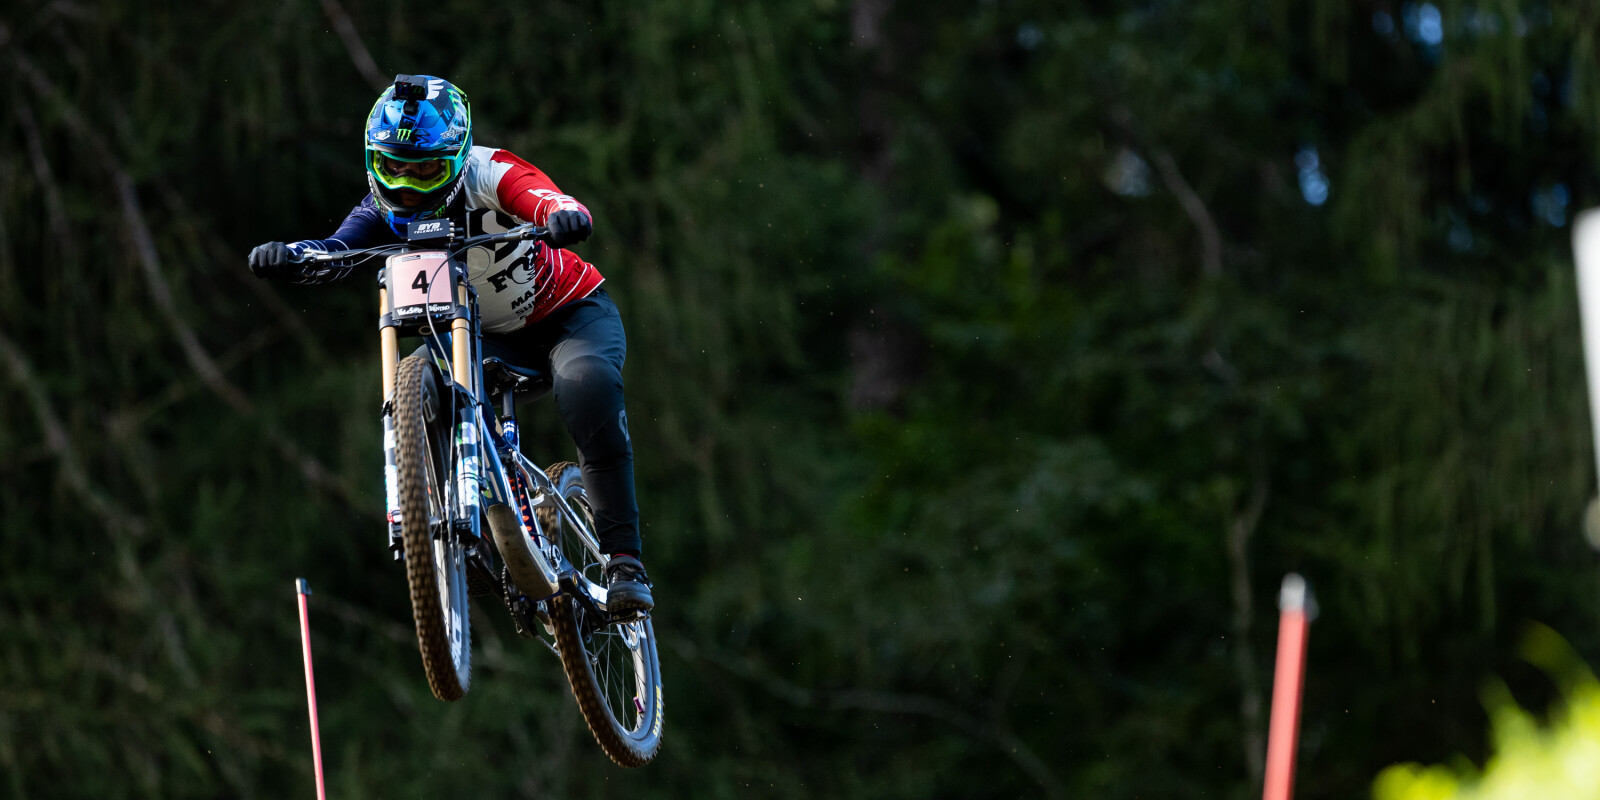 Shots from the MTB Downhill World Championships in Val di Sole, Italy